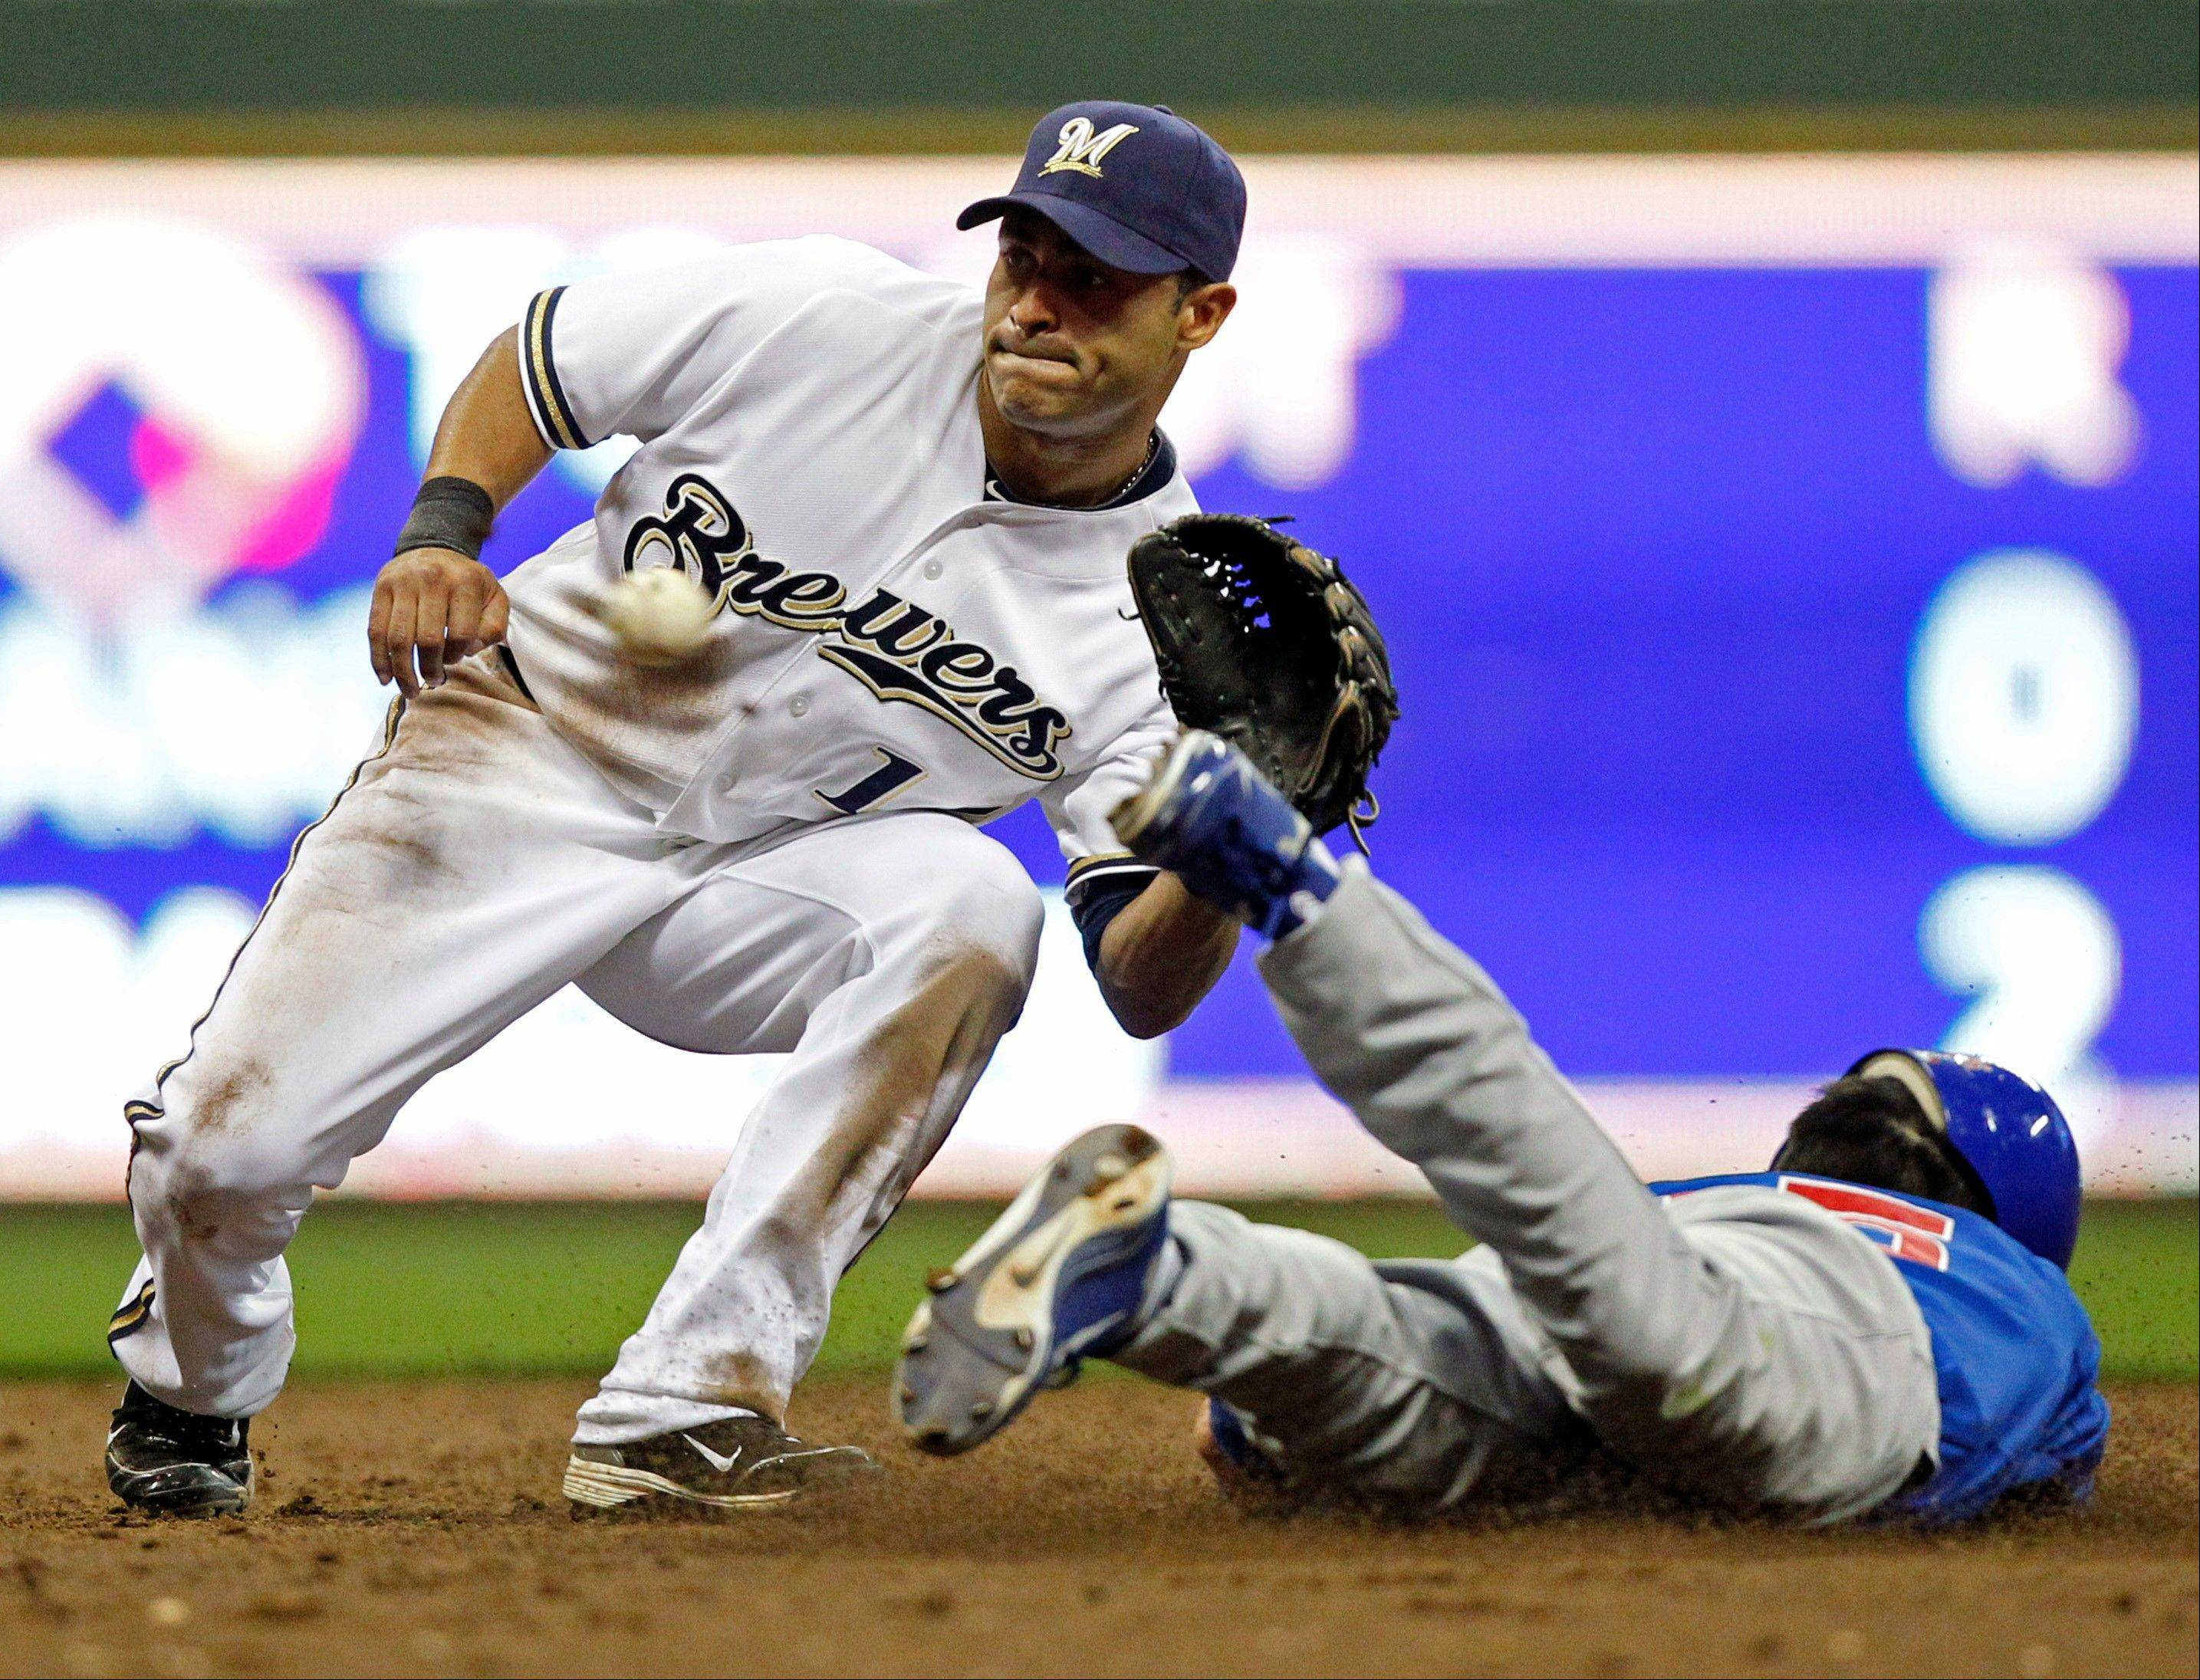 Darwin Barney, right, steals second ahead of the tag by Milwaukee Brewers' Jerry Hairston Jr., in the third inning of a baseball game on Friday, Aug. 26, 2011, in Milwaukee.